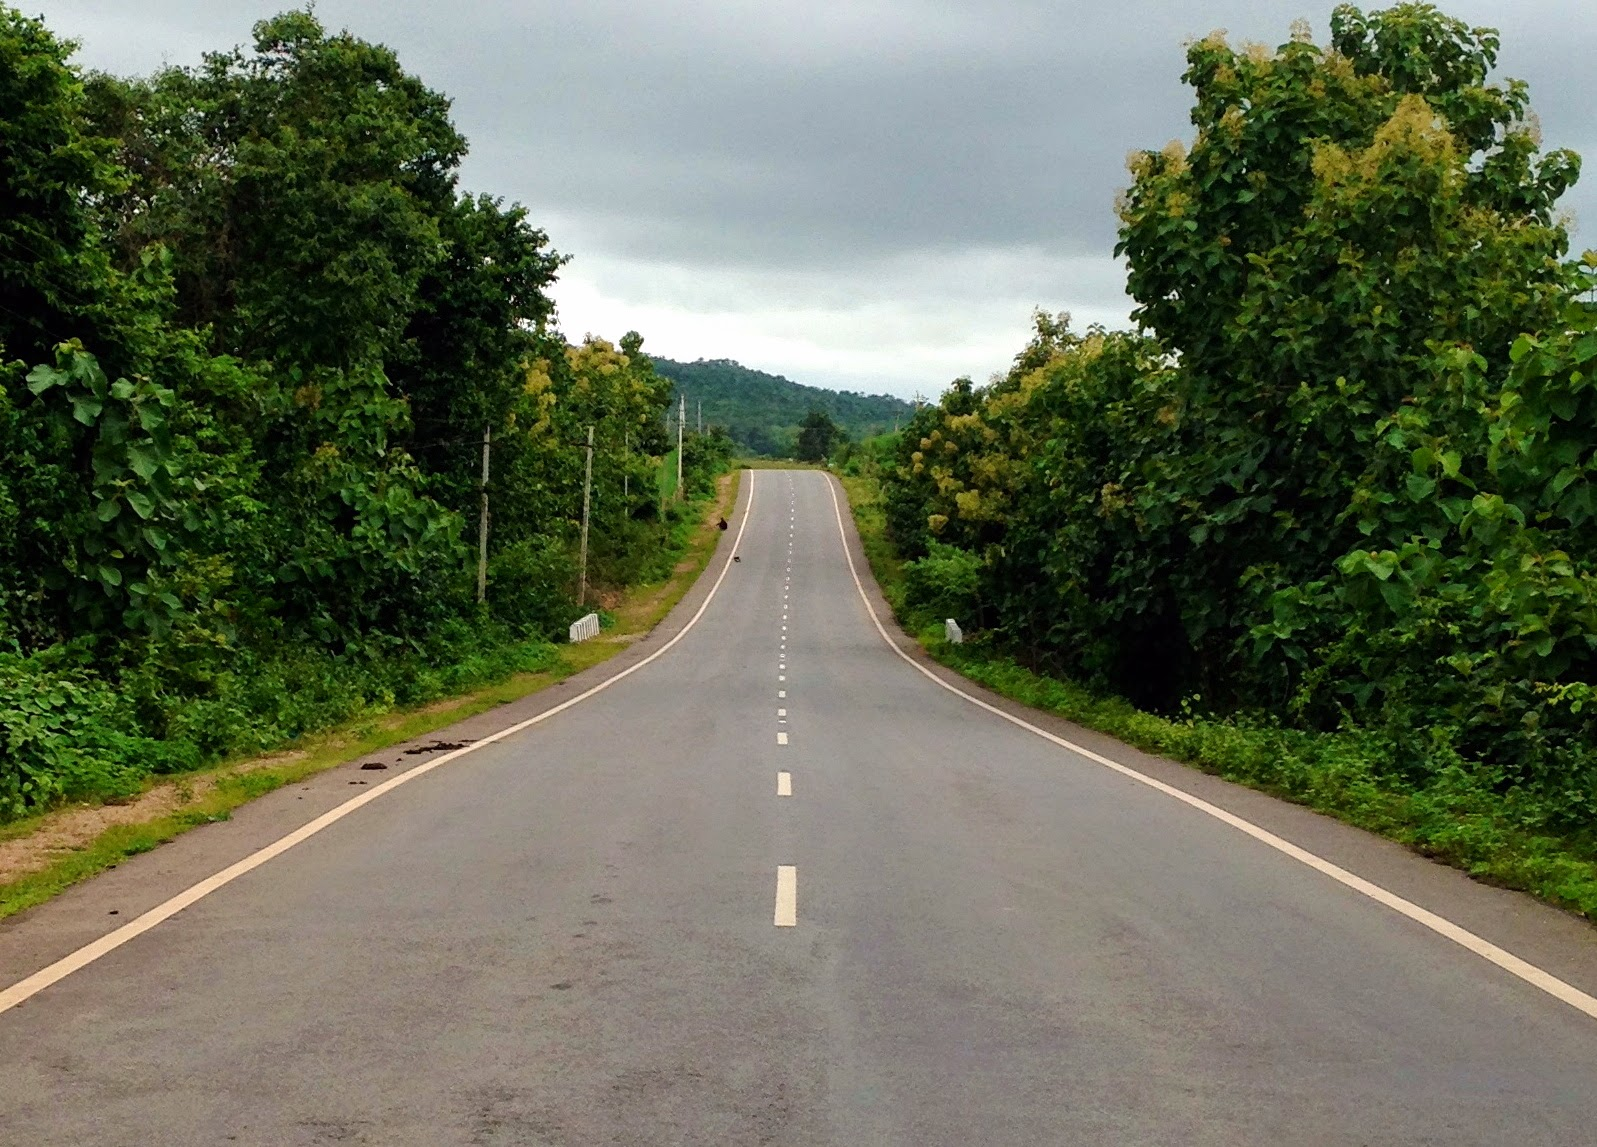 The road from Dharwad to Goa via Ramnagar is top class with lush greenery on either side!